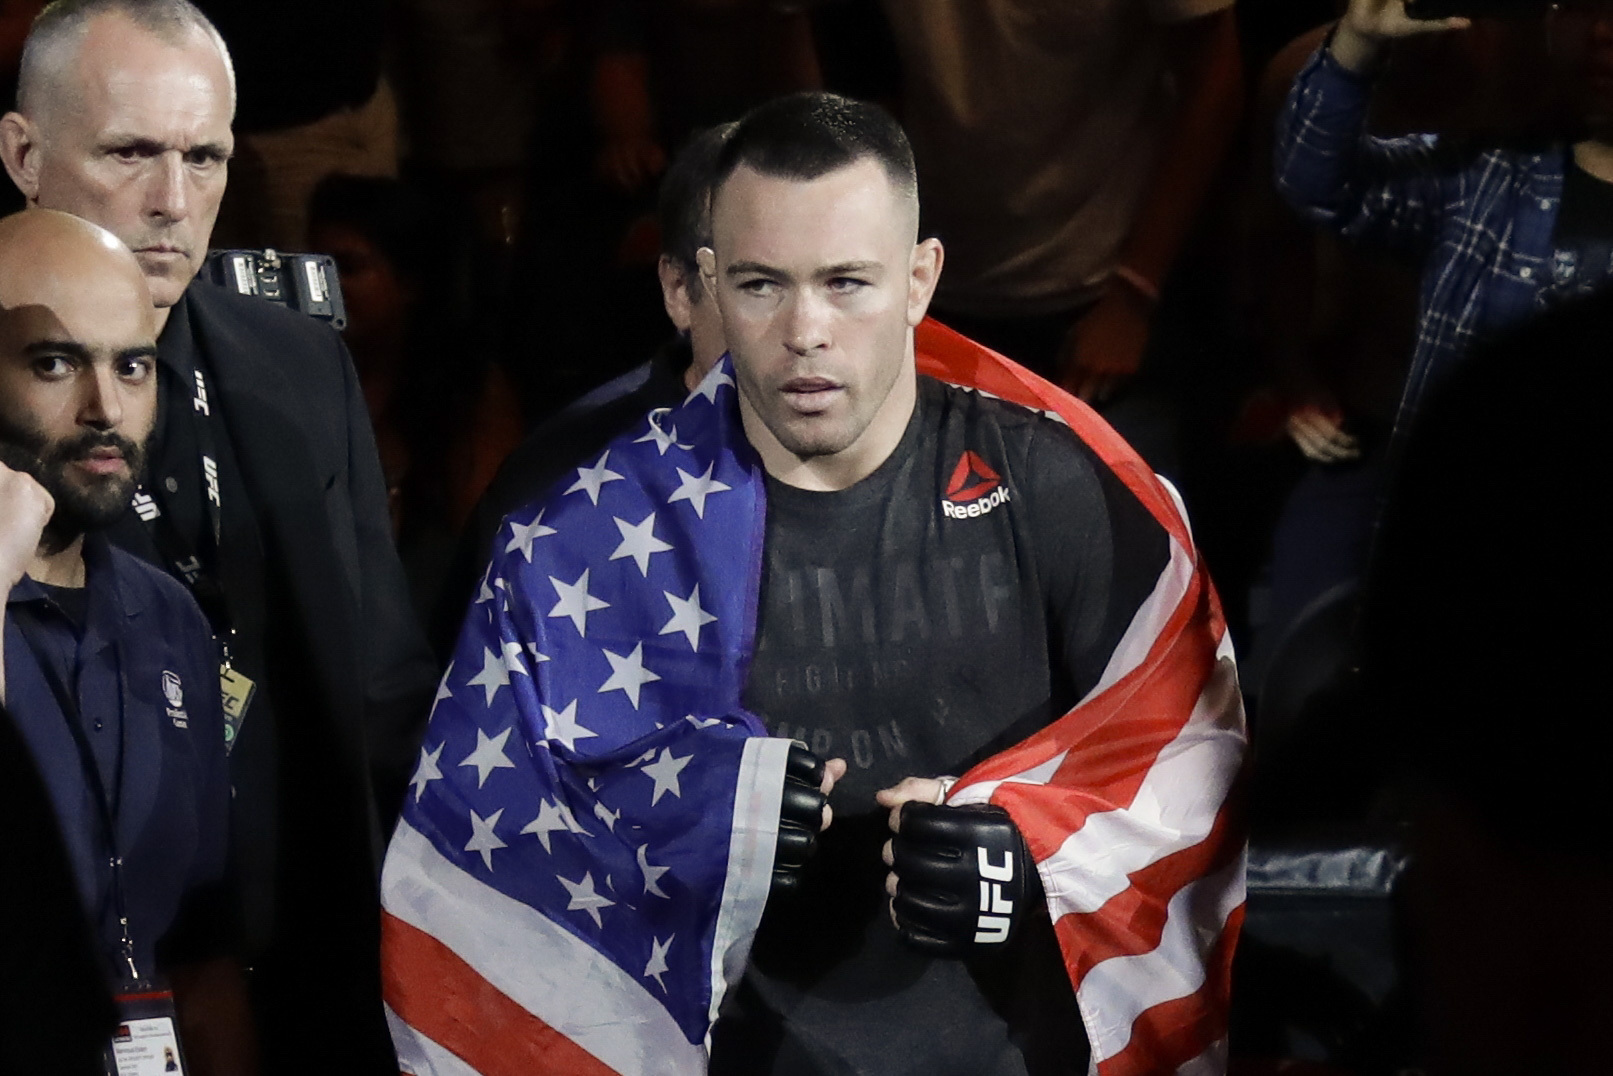 Colby Covington And Kamaru Usman Will Settle Their Bad Blood At Ufc 245 Bleacher Report Latest News Videos And Highlights